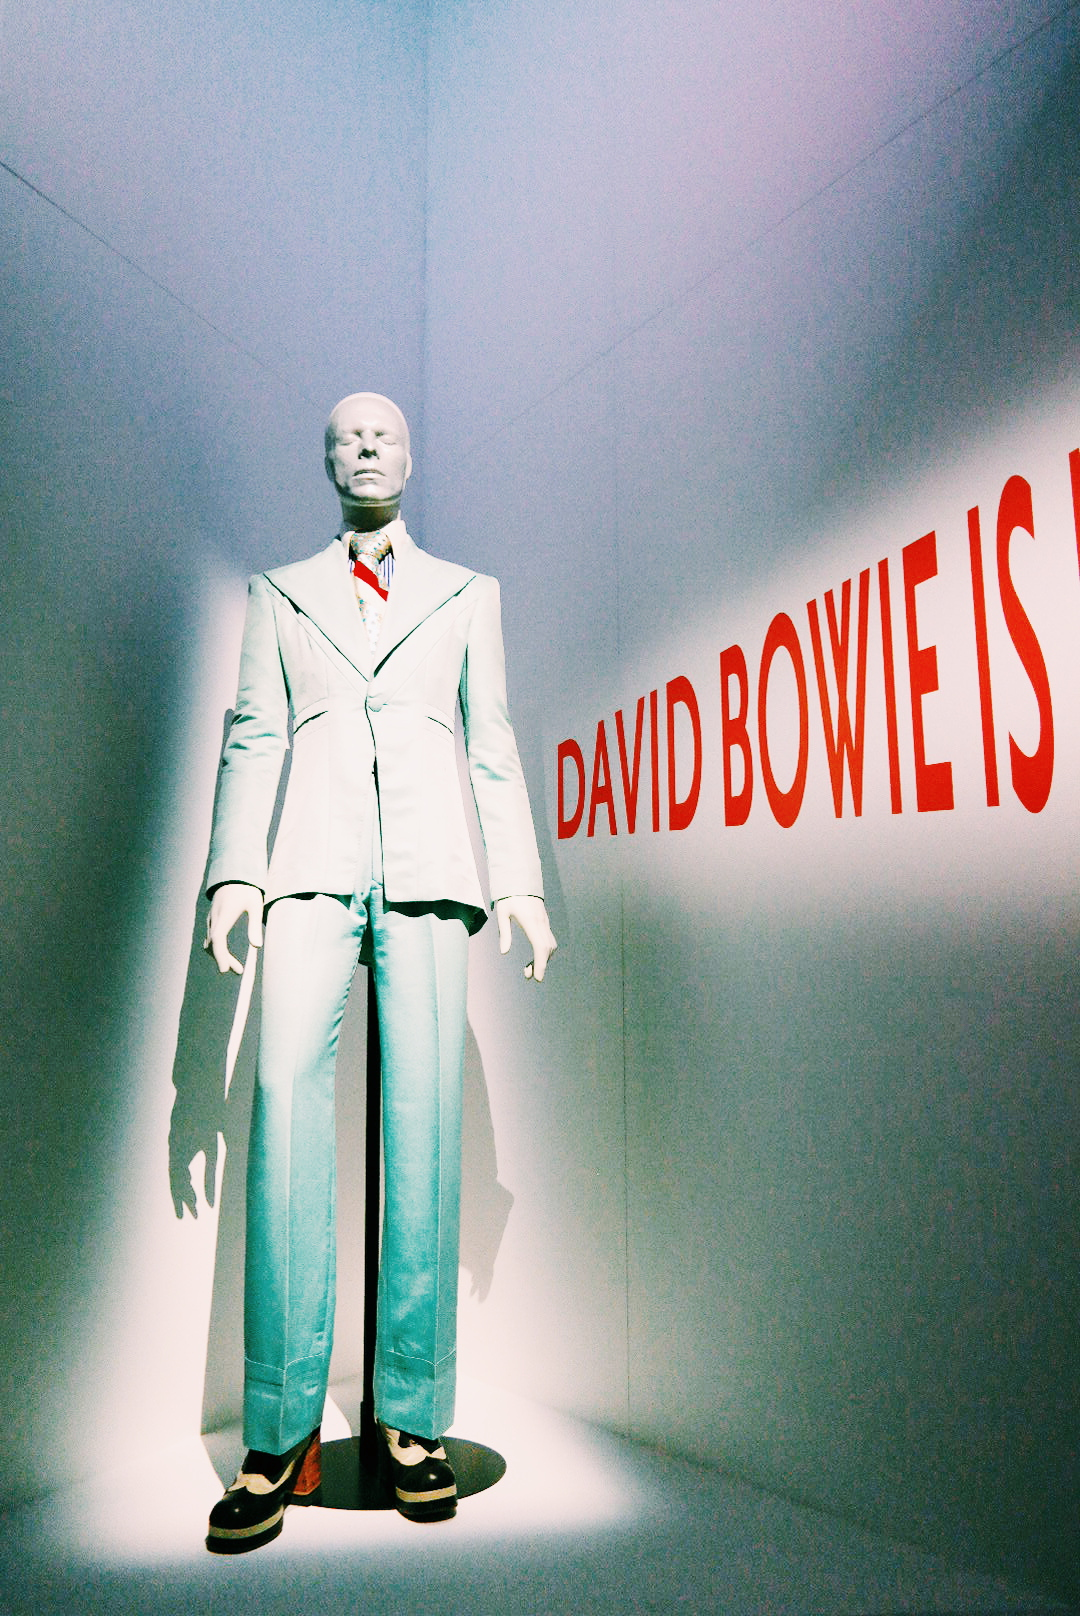 Courtesy of The David Bowie Archive - Victoria and Albert Museum